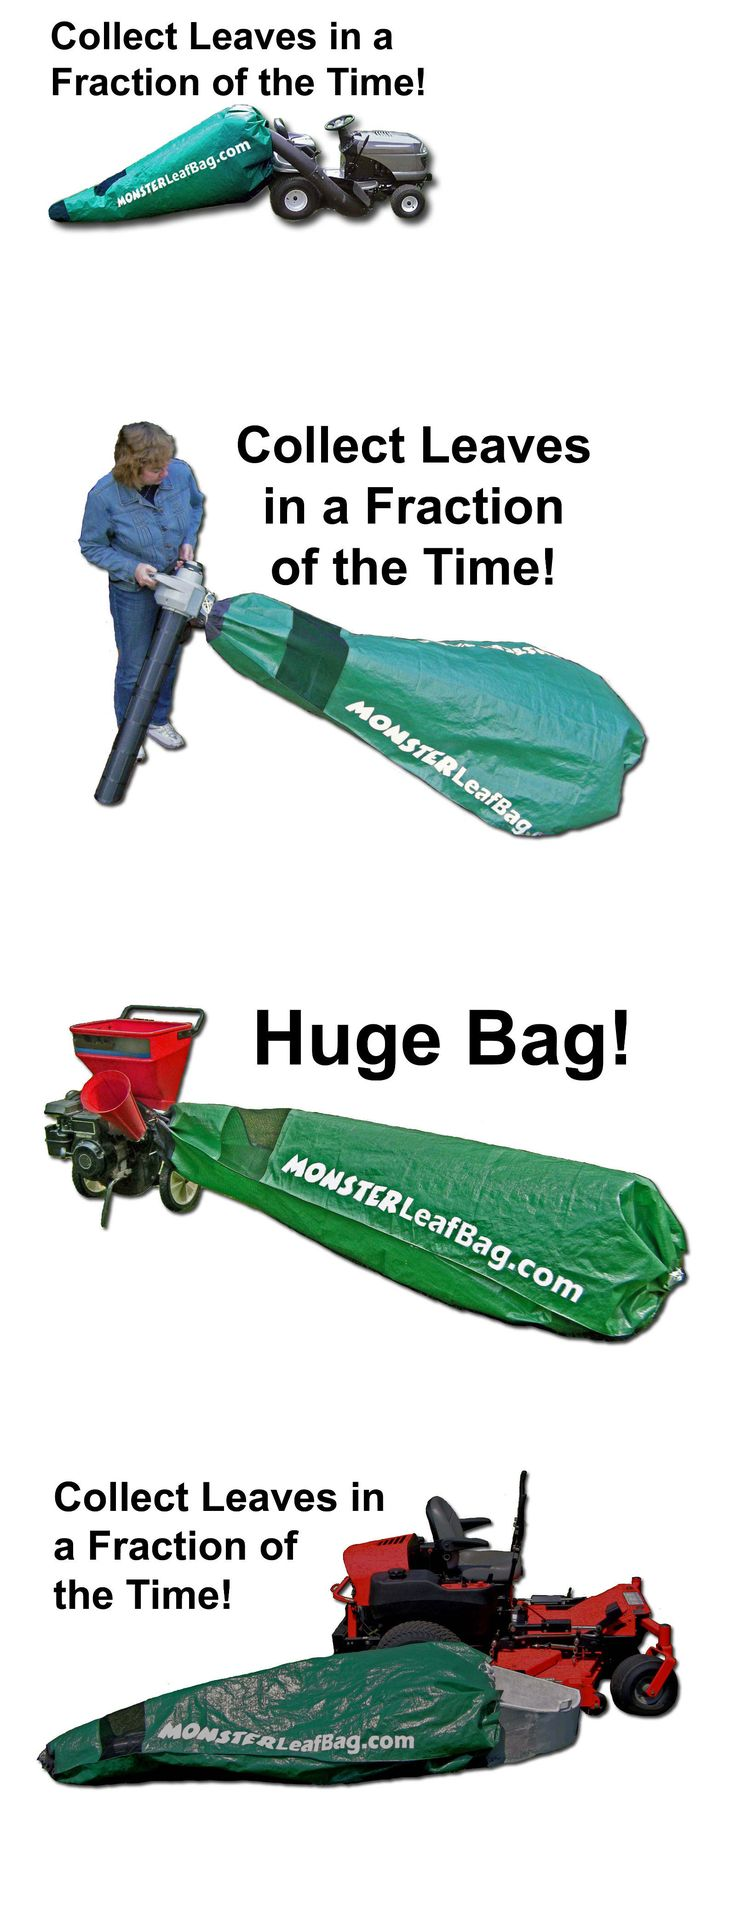 Riding Mowers 177021: Bolens Lawntractor Bagger, Huge Riding Mower Bag, Fast, Easy, Monster Leaf Bag -> BUY IT NOW ONLY: $59.99 on eBay!